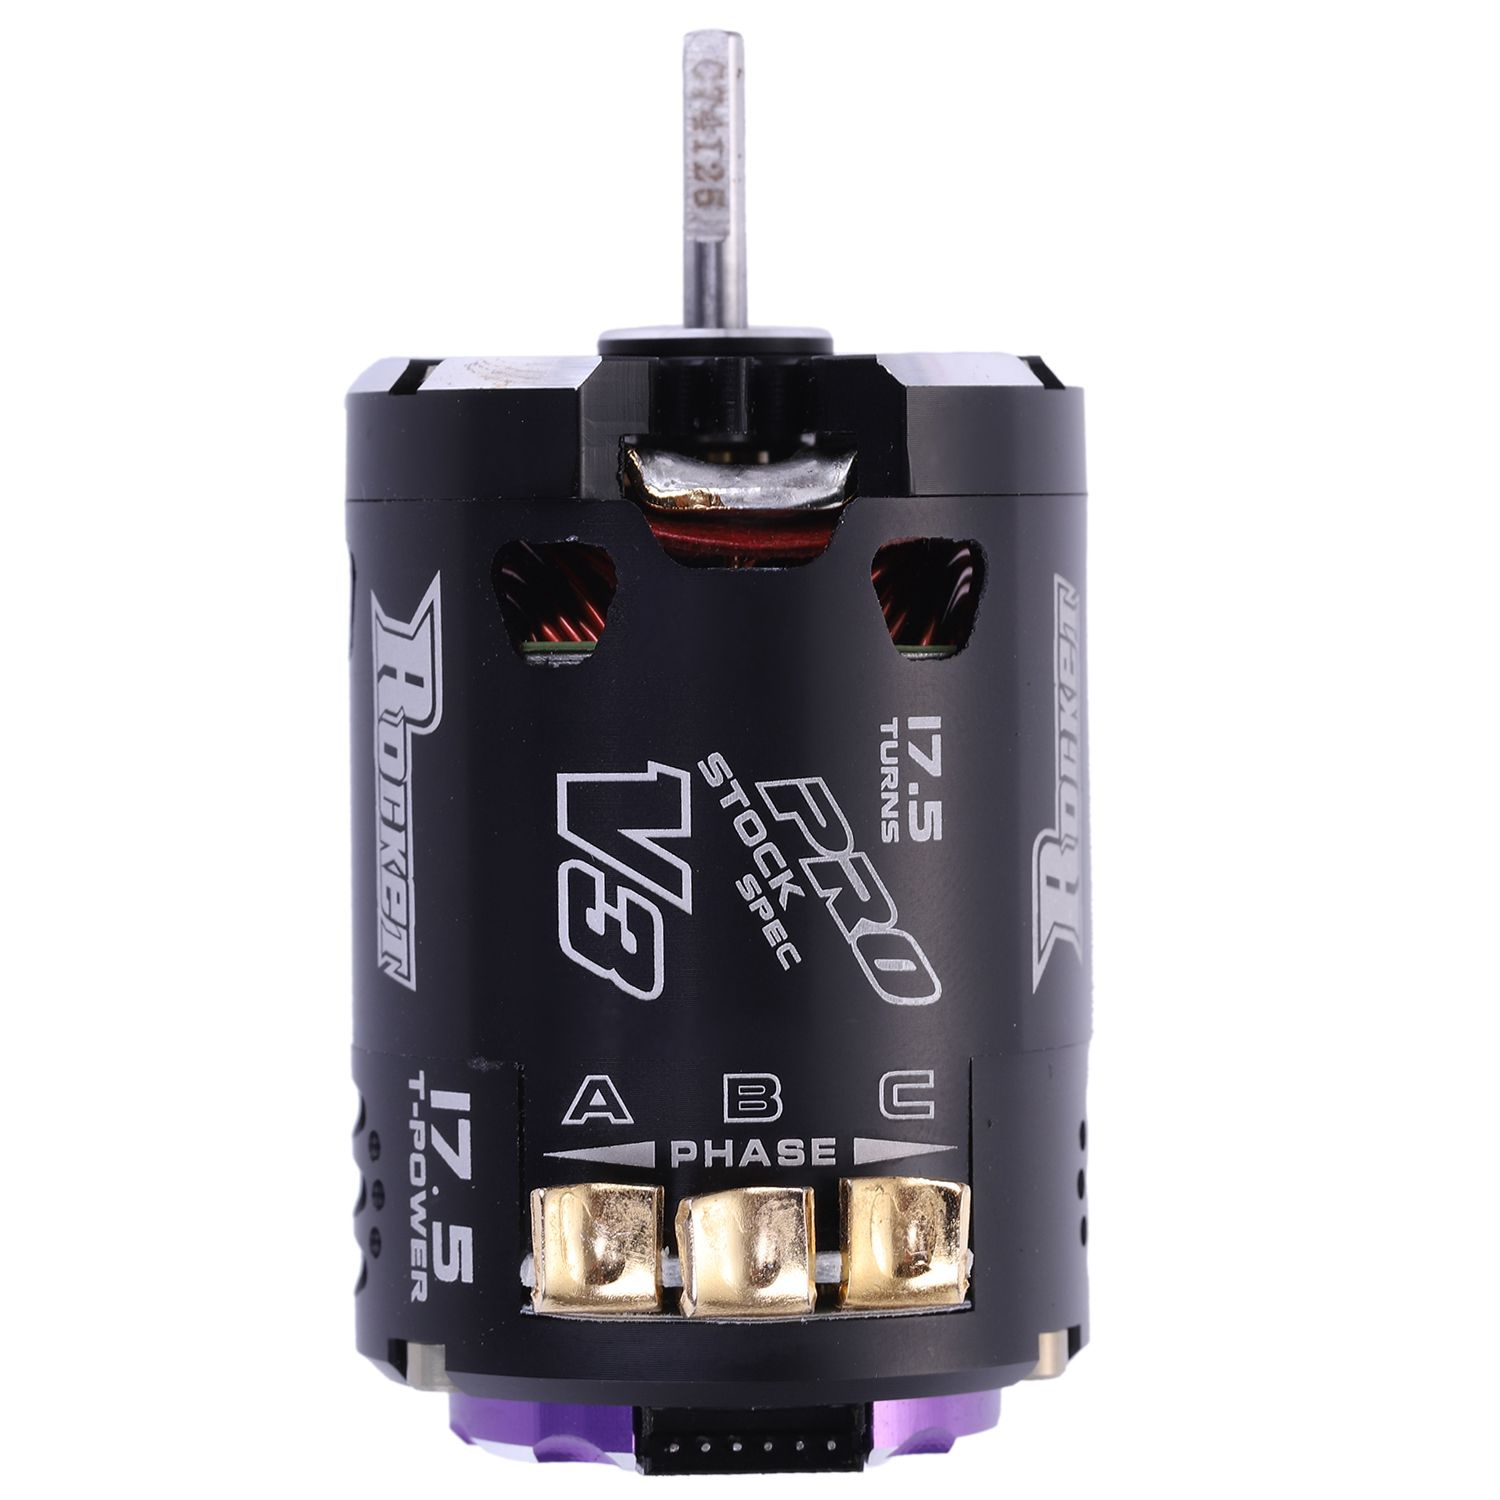 SURPASS HOBBY V3 540 17.5T Sensored SPEC RC Brushless Motor For 1/10 RC Racing Car Truck RC Car Parts Accessories Purple Black